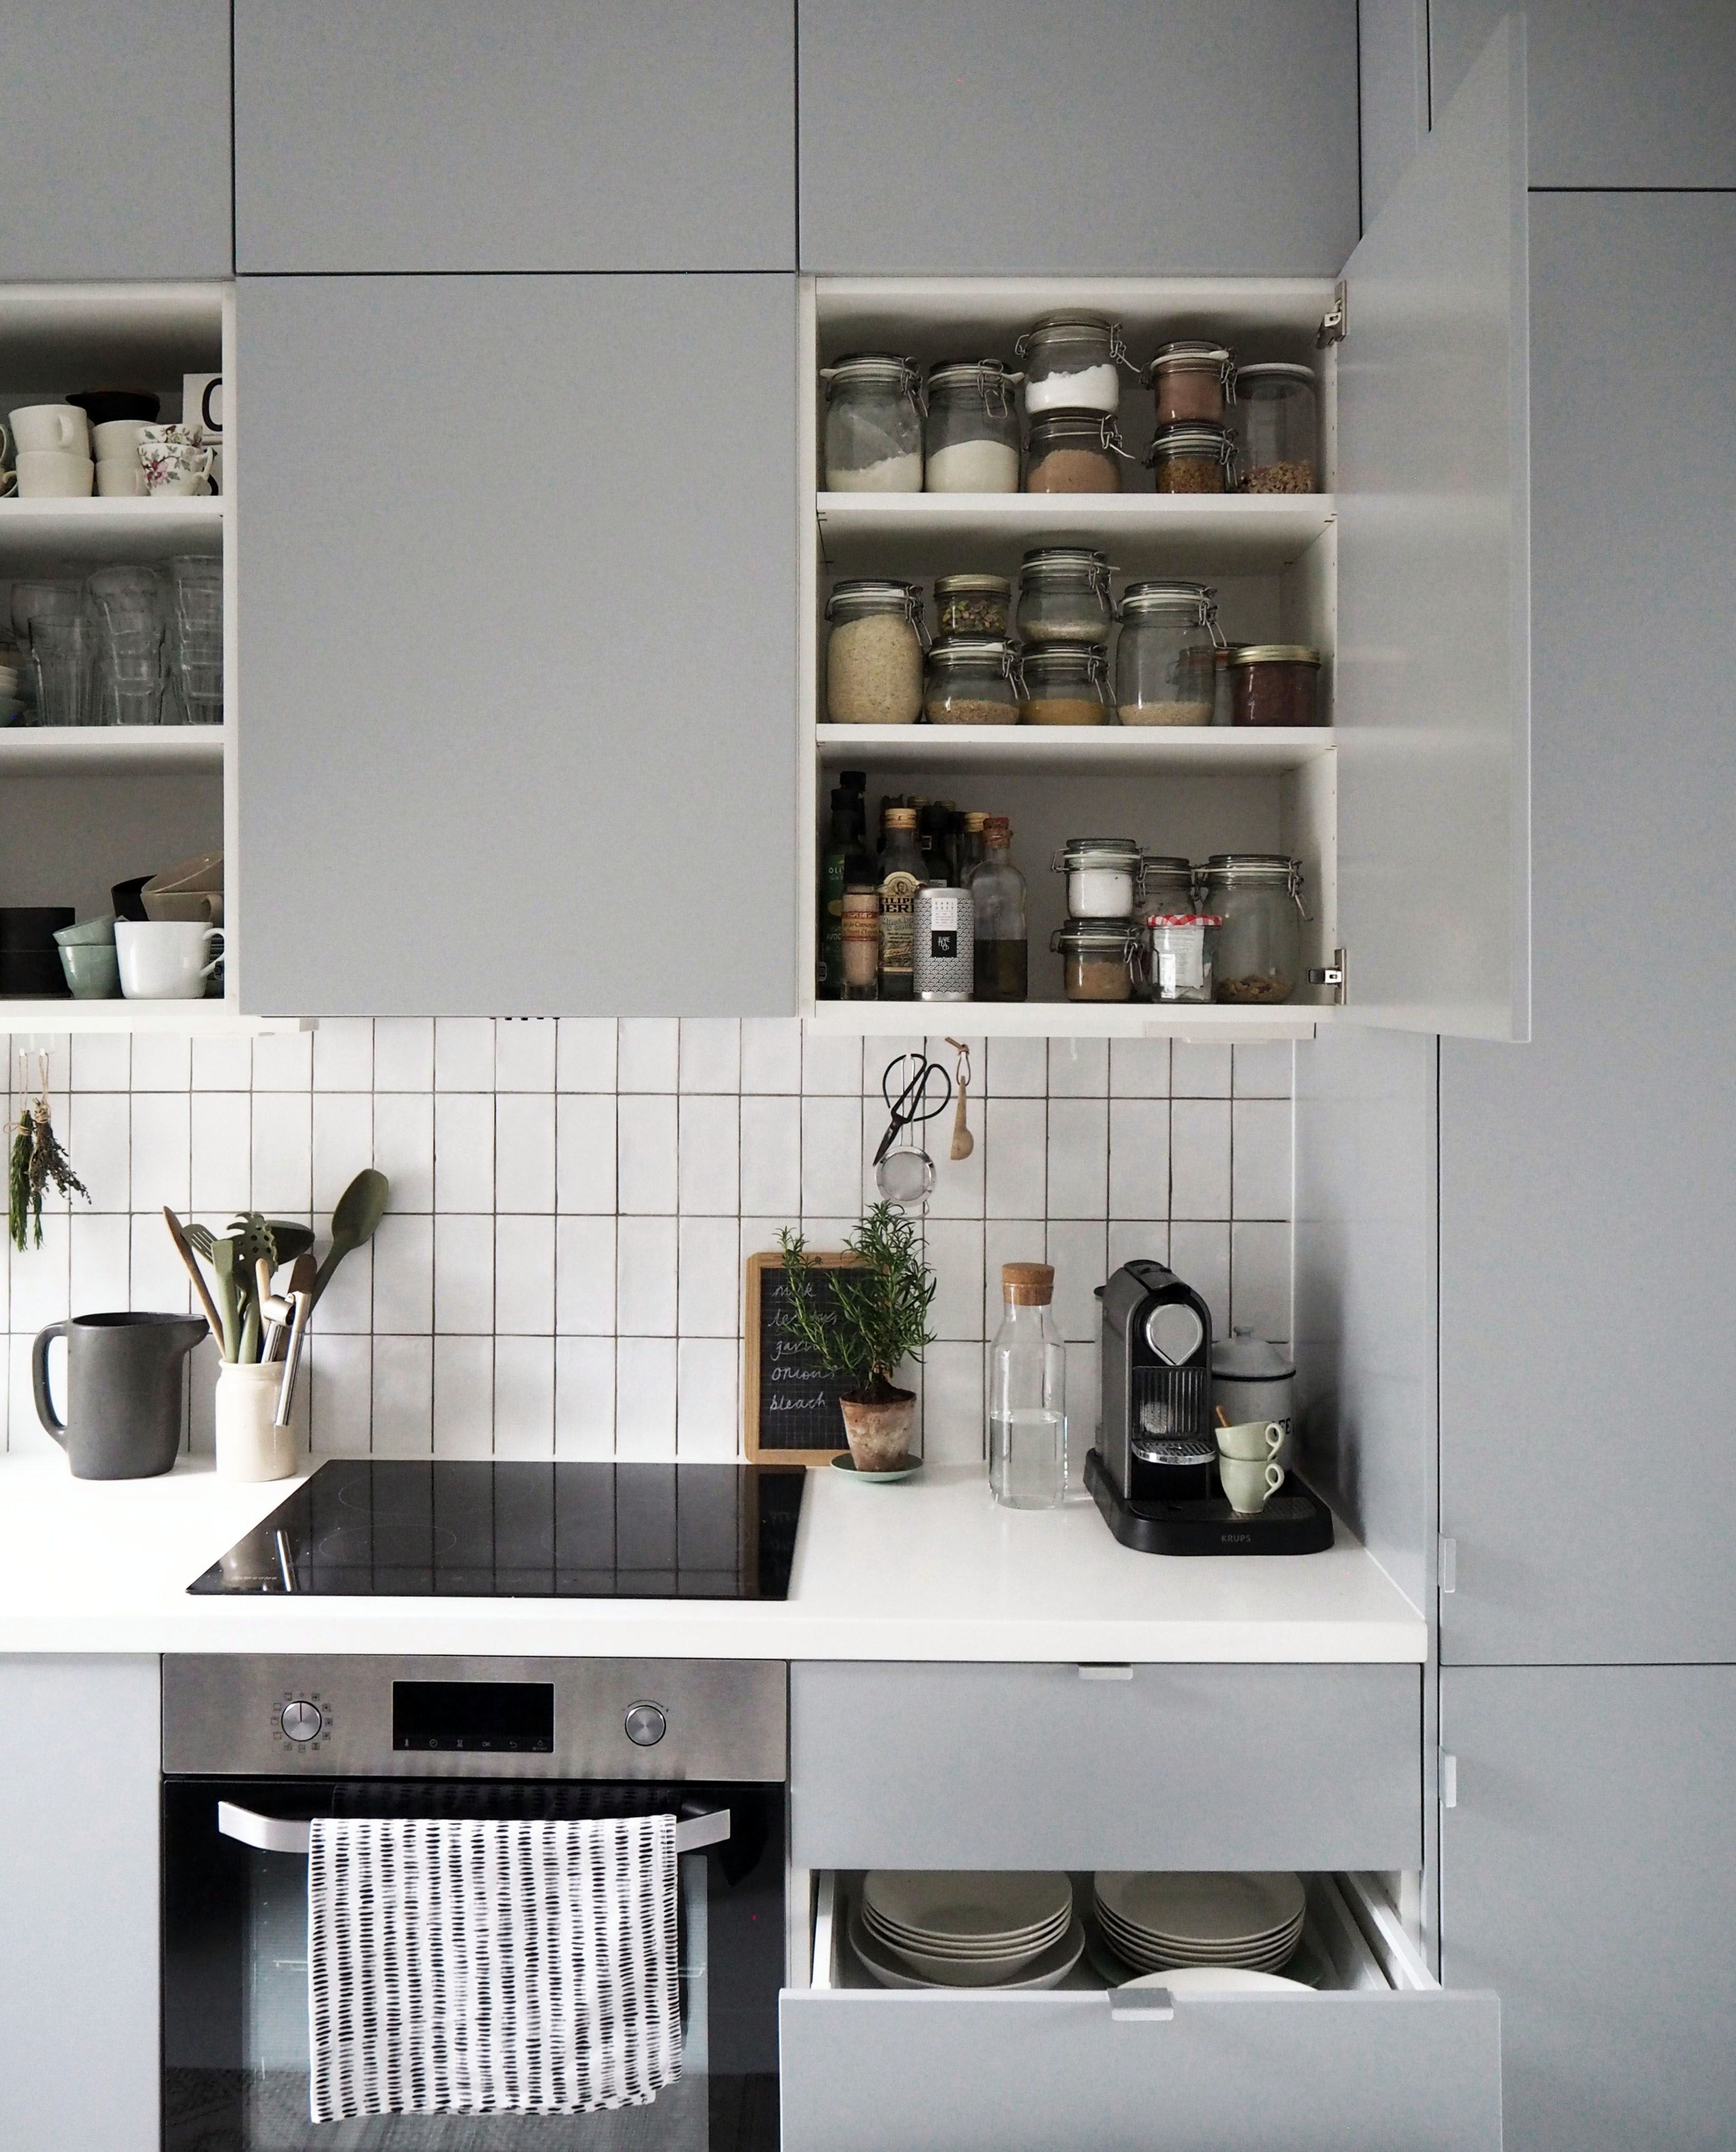 Smal Kitchen Ideas To Transform Your Portable Room Into A Smart Super Organised Space Ikea Small Kitchen Kitchen Remodel Small Small Space Kitchen